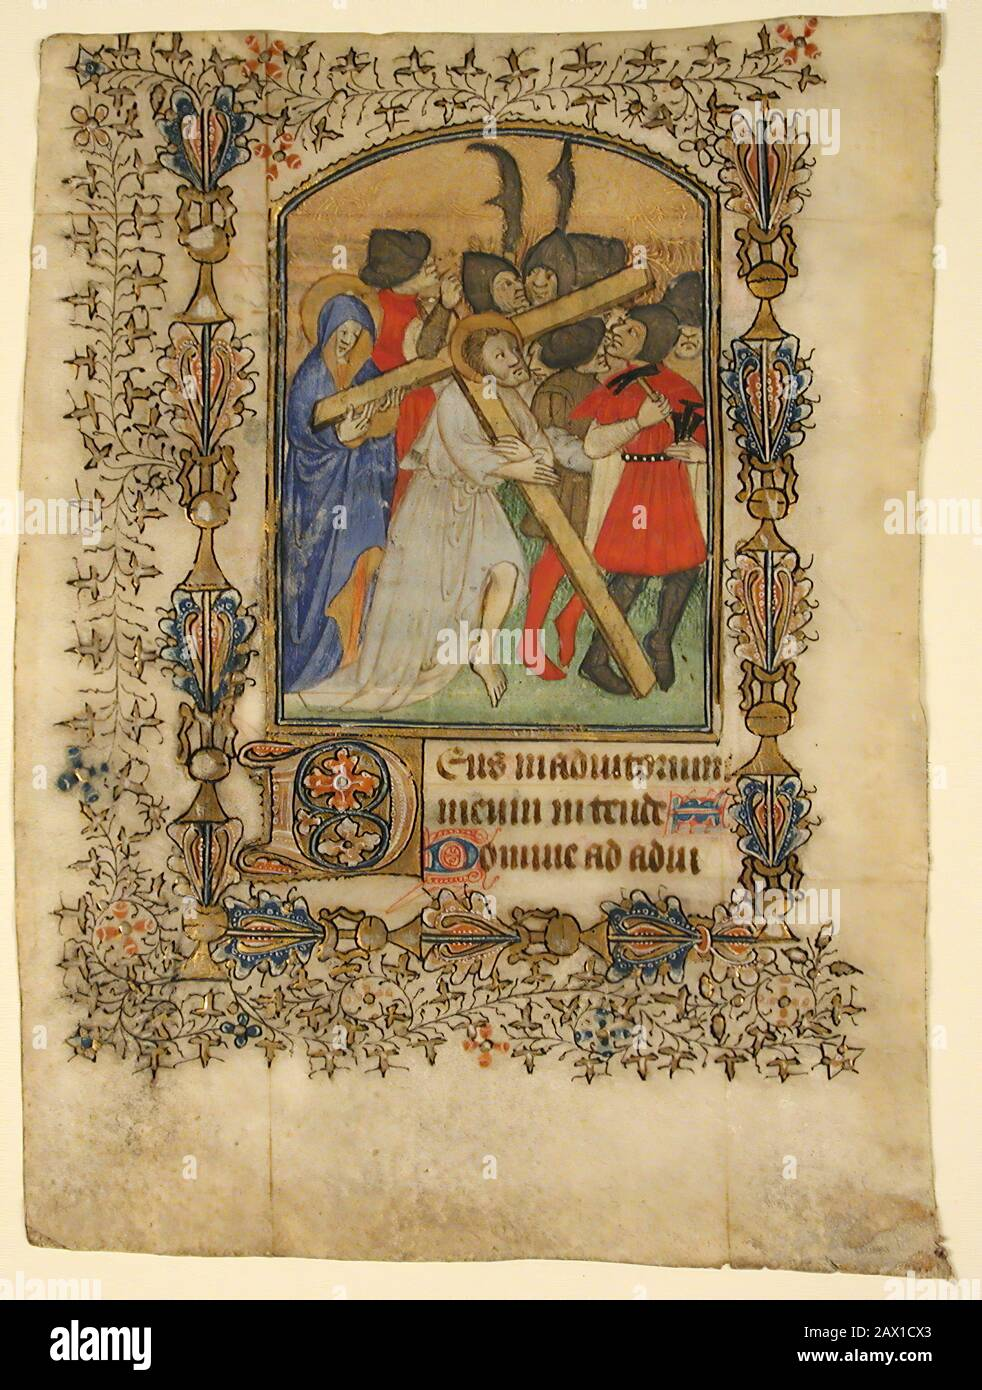 Manuscript Leaf from a Book of Hours Showing an Illuminated Initial D and Christ Bearing the Cross, 1390-1400. Stock Photo